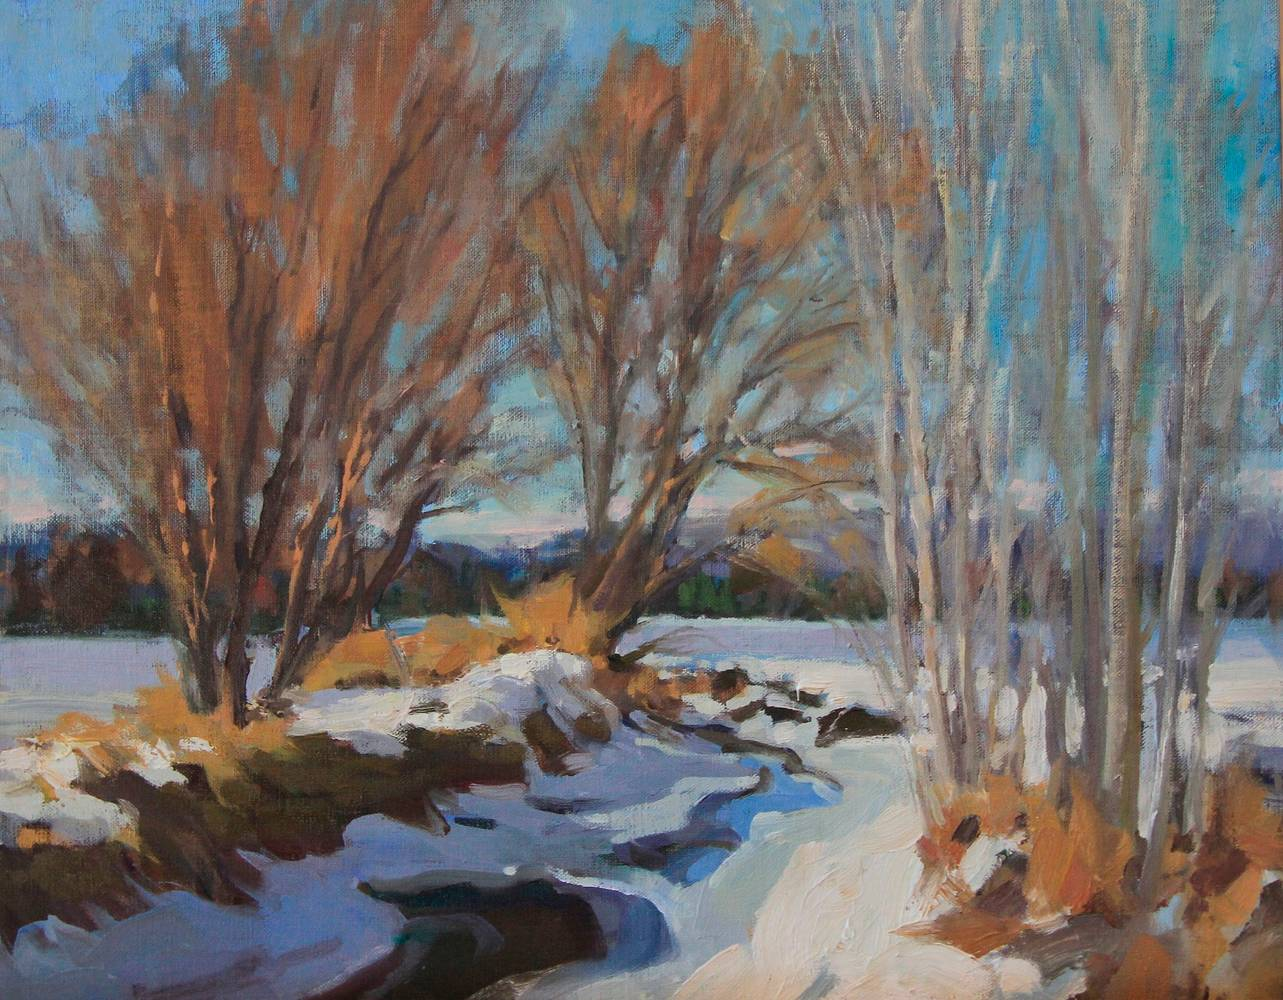 Oil painting Winter Canal Daniels by Susette Gertsch